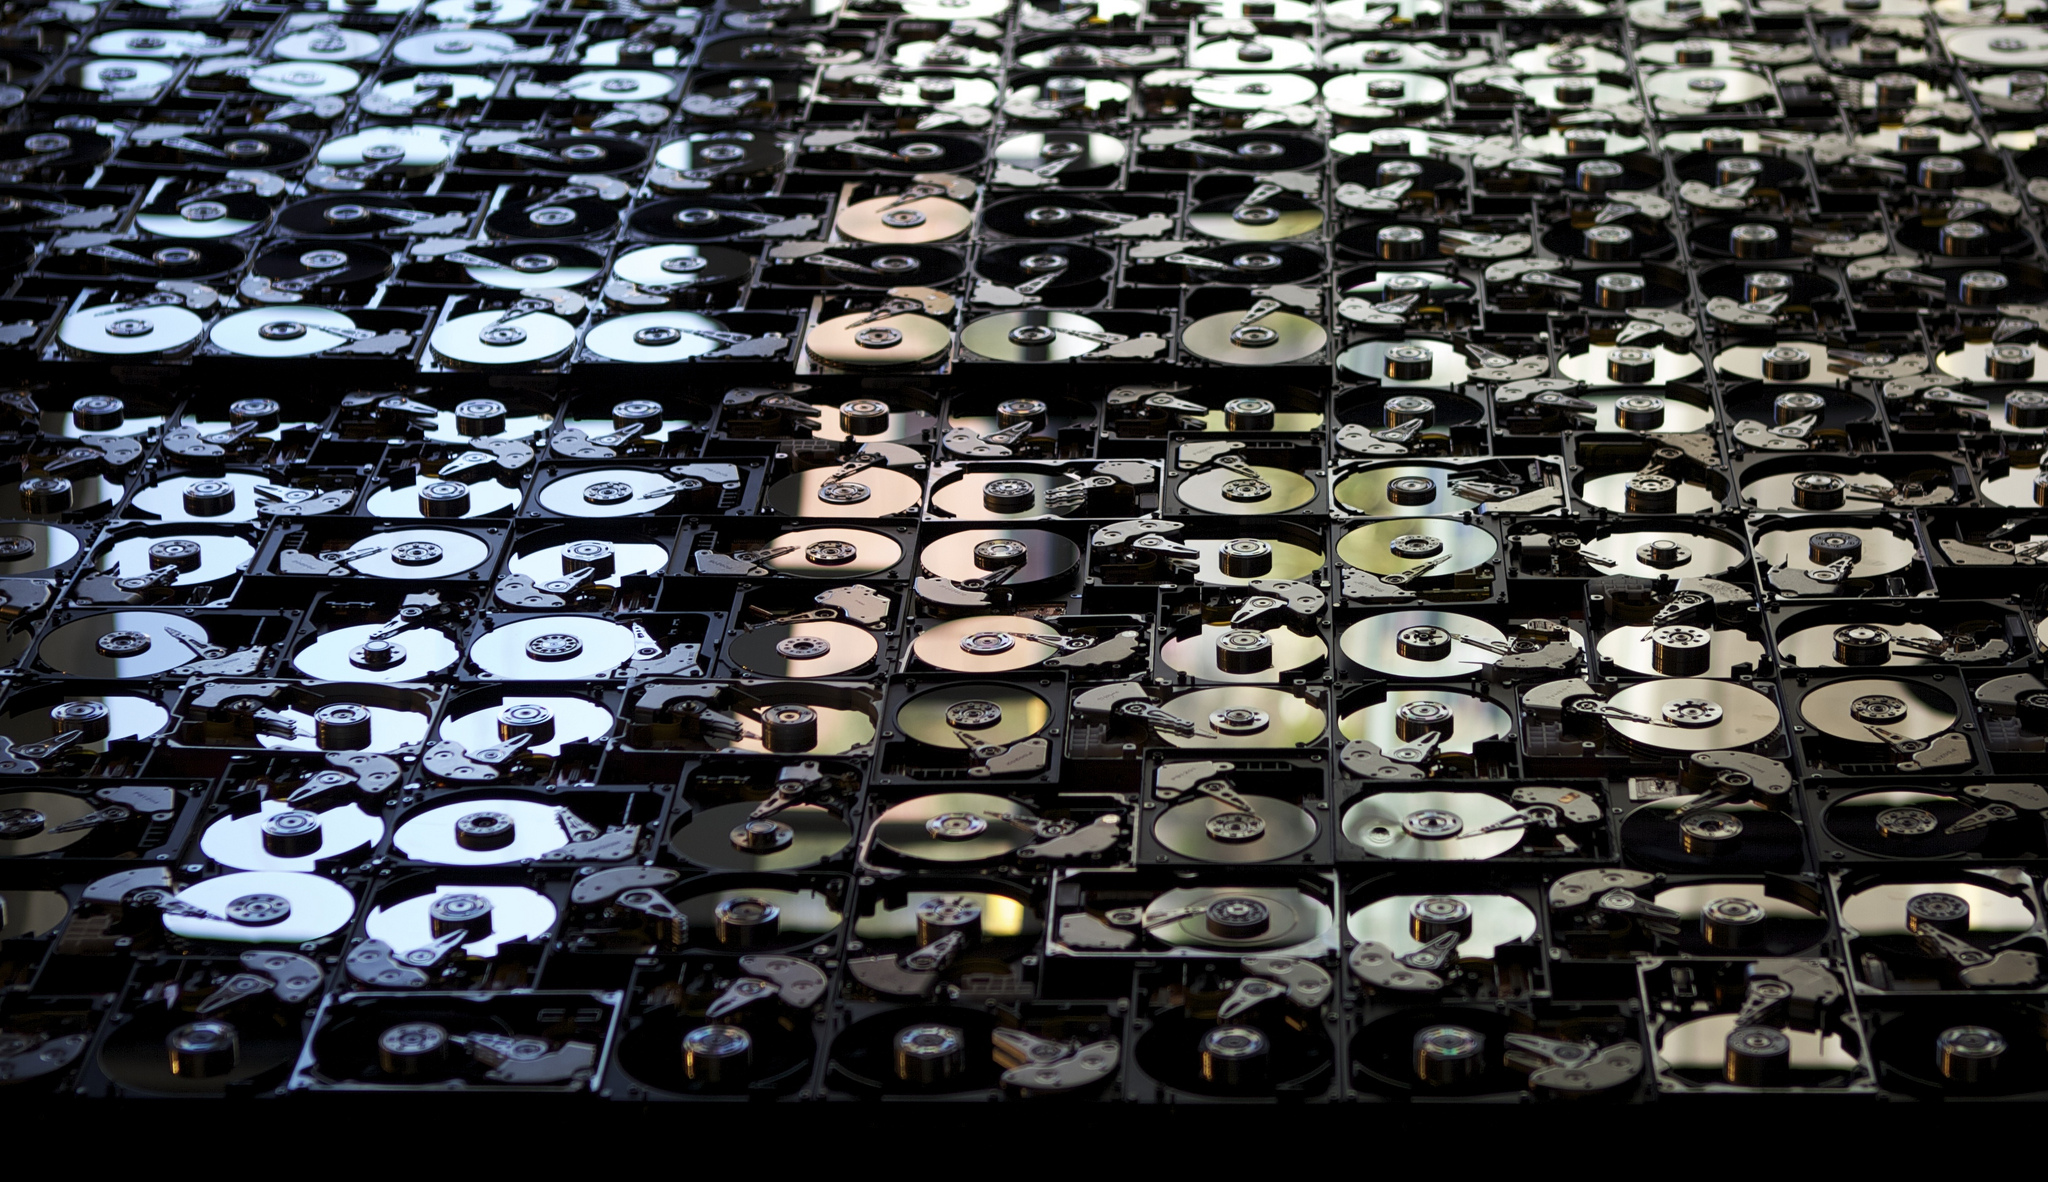 Wall of hard drives